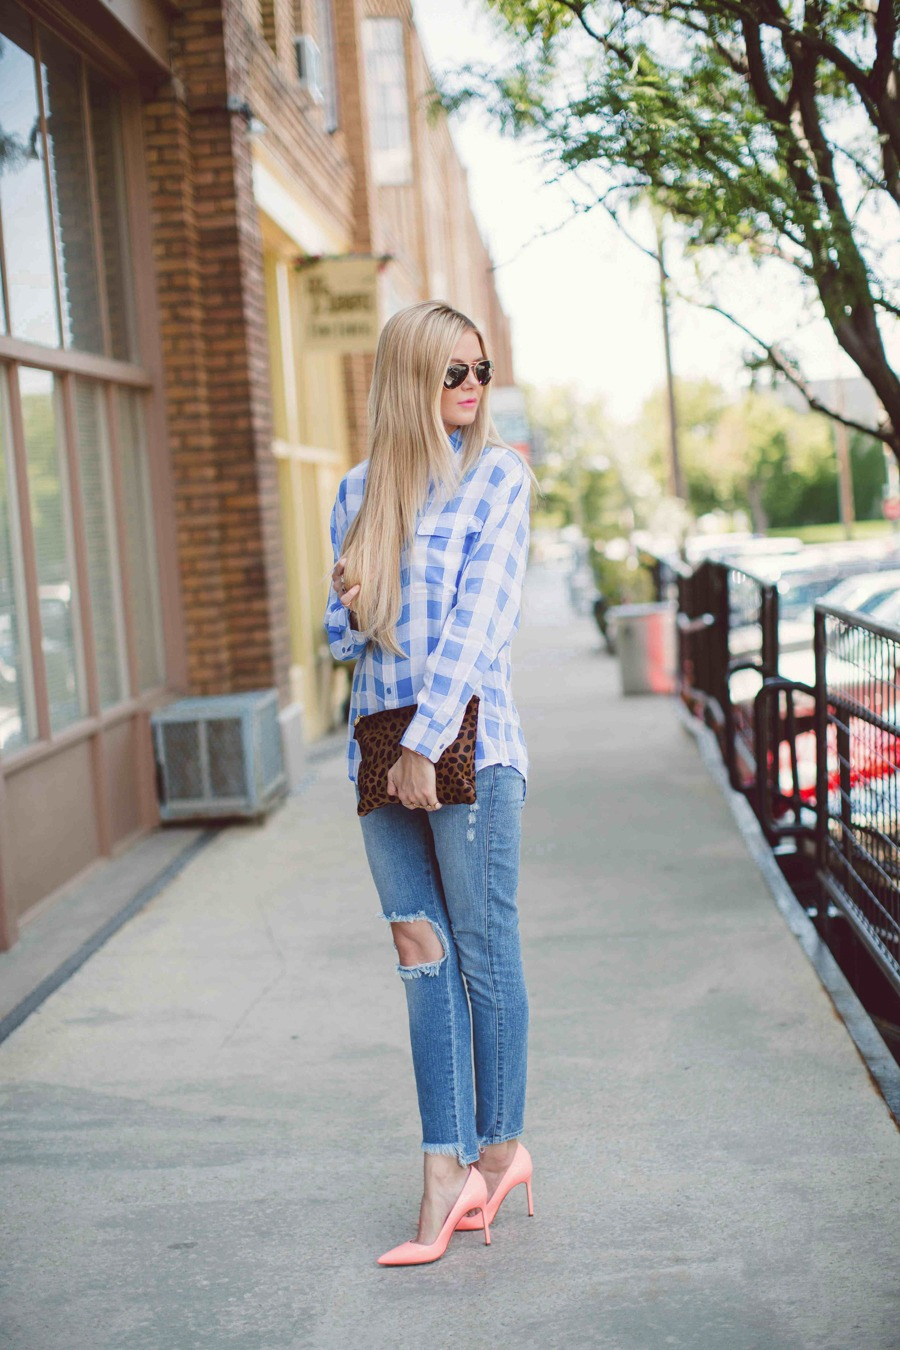 Amber Fillerup Clarke is wearing a blue and white plaid shirt from Equipment, distressed jeans from ShopBop, shoes from Manolo Blahnik and a clutch from Clare Vivier